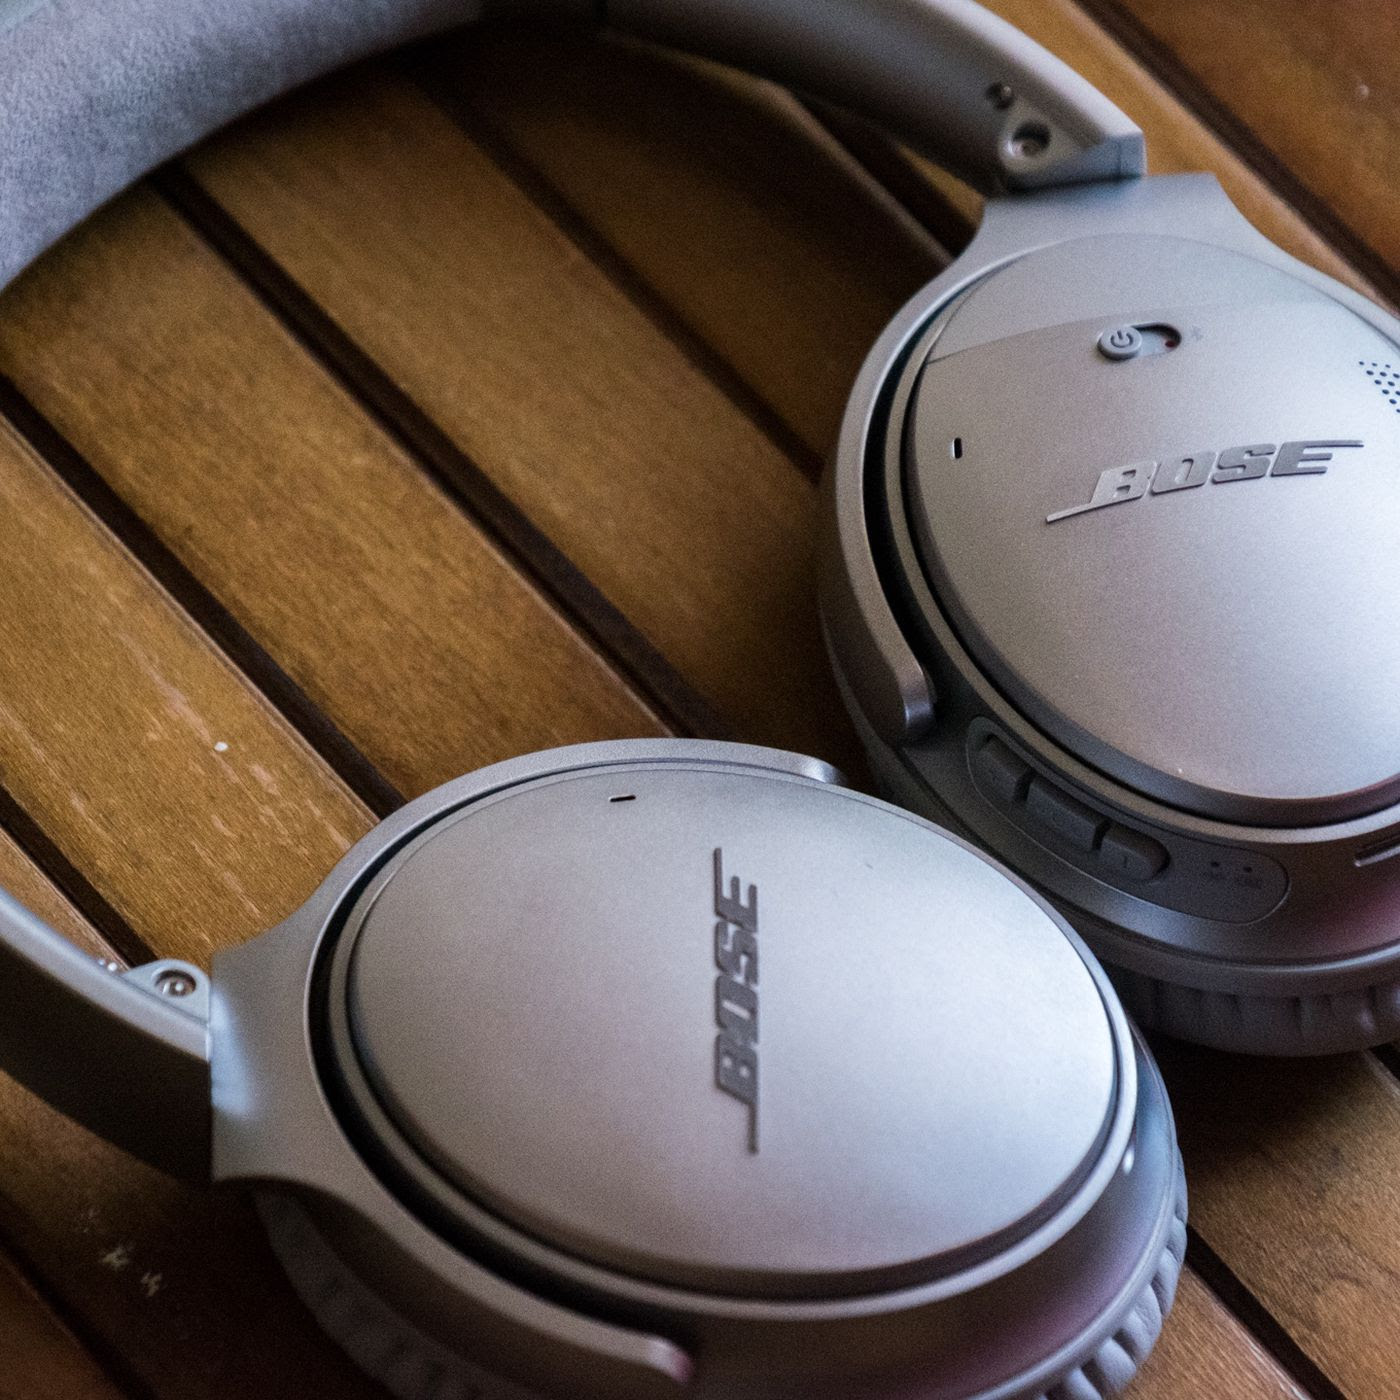 Save on Bose headphones and iPhone accessories